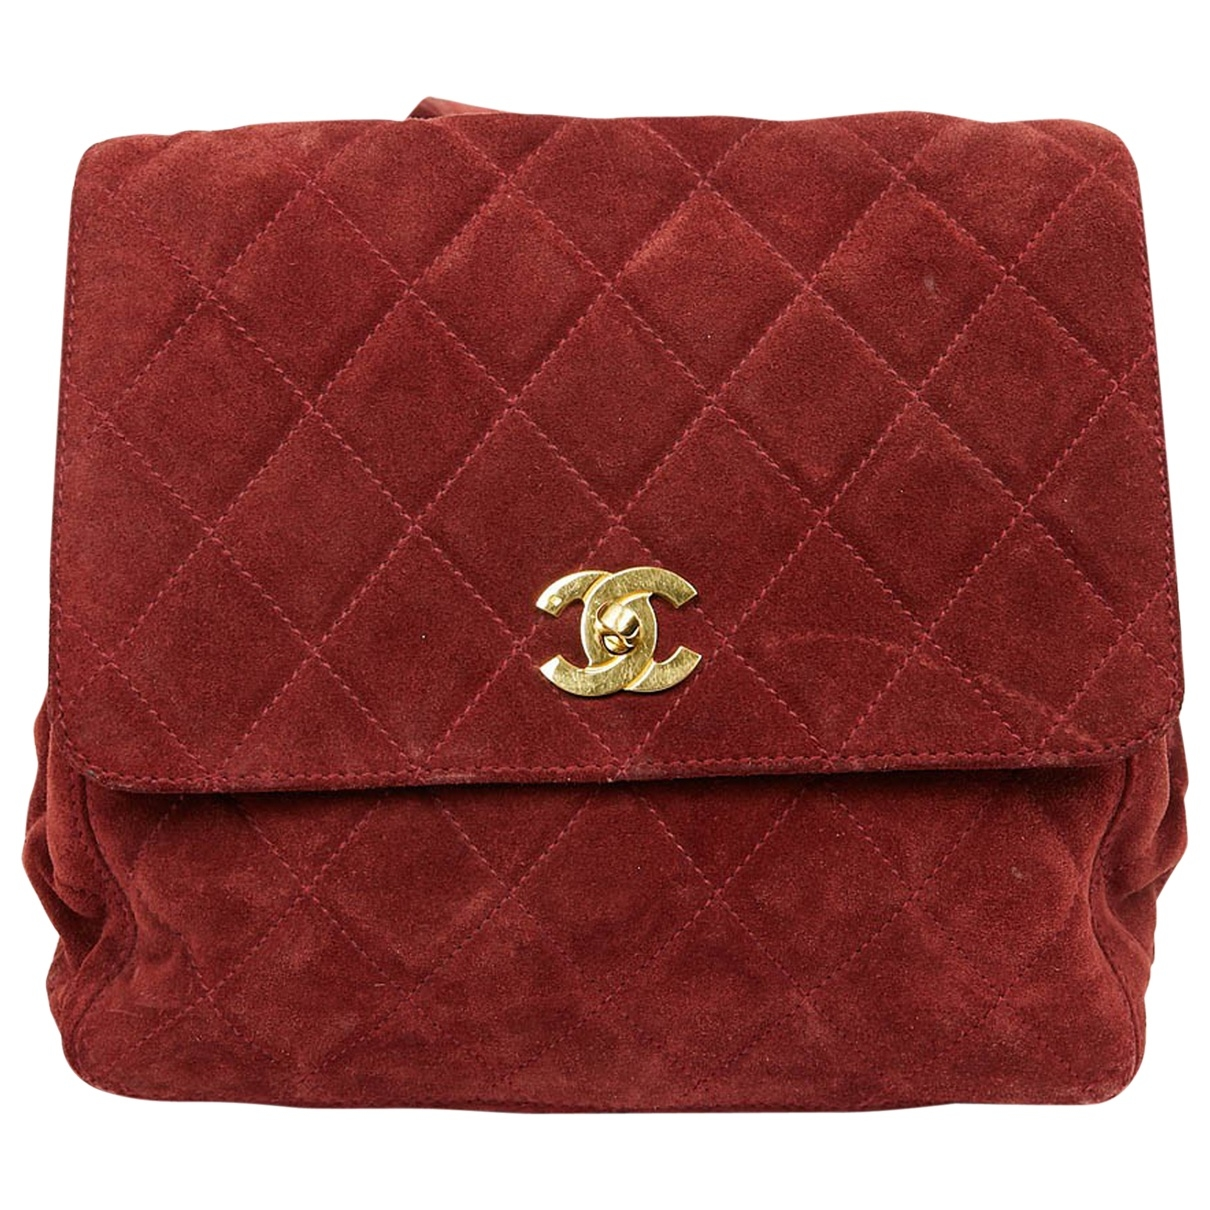 Chanel Timeless/Classique Rucksaecke in  Rot Veloursleder